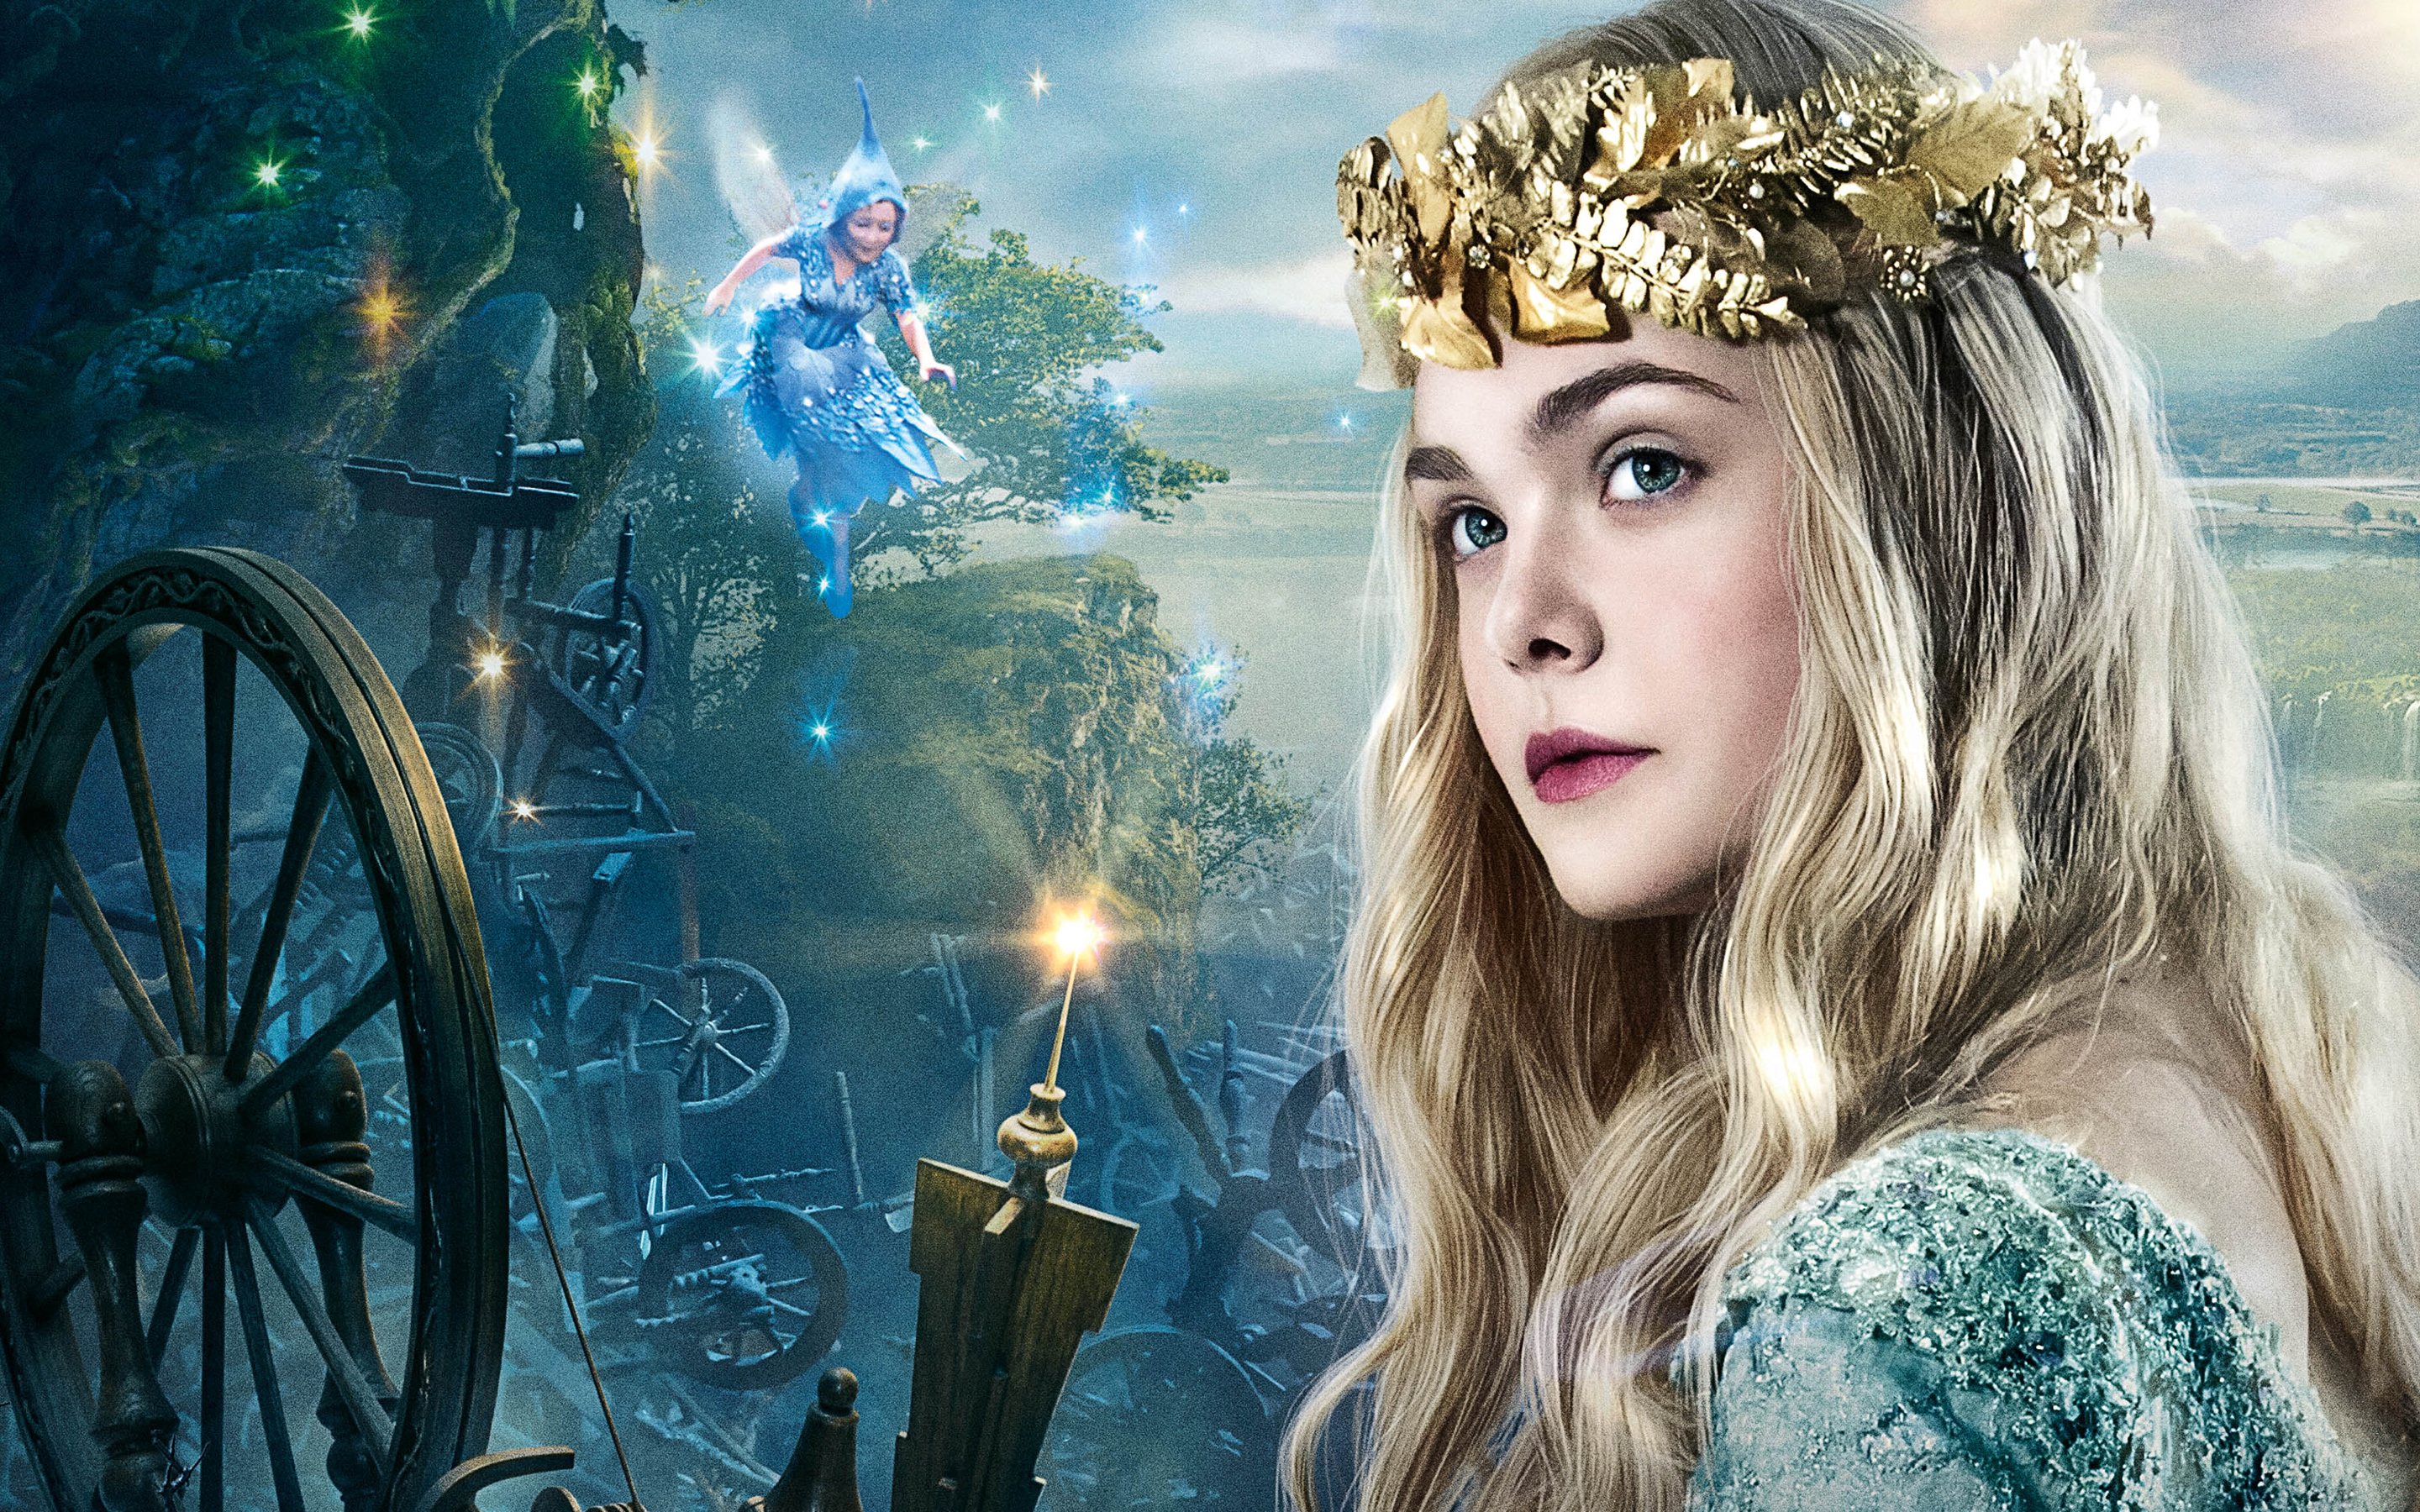 Elle Fanning as Princess Aurora 979.07 Kb